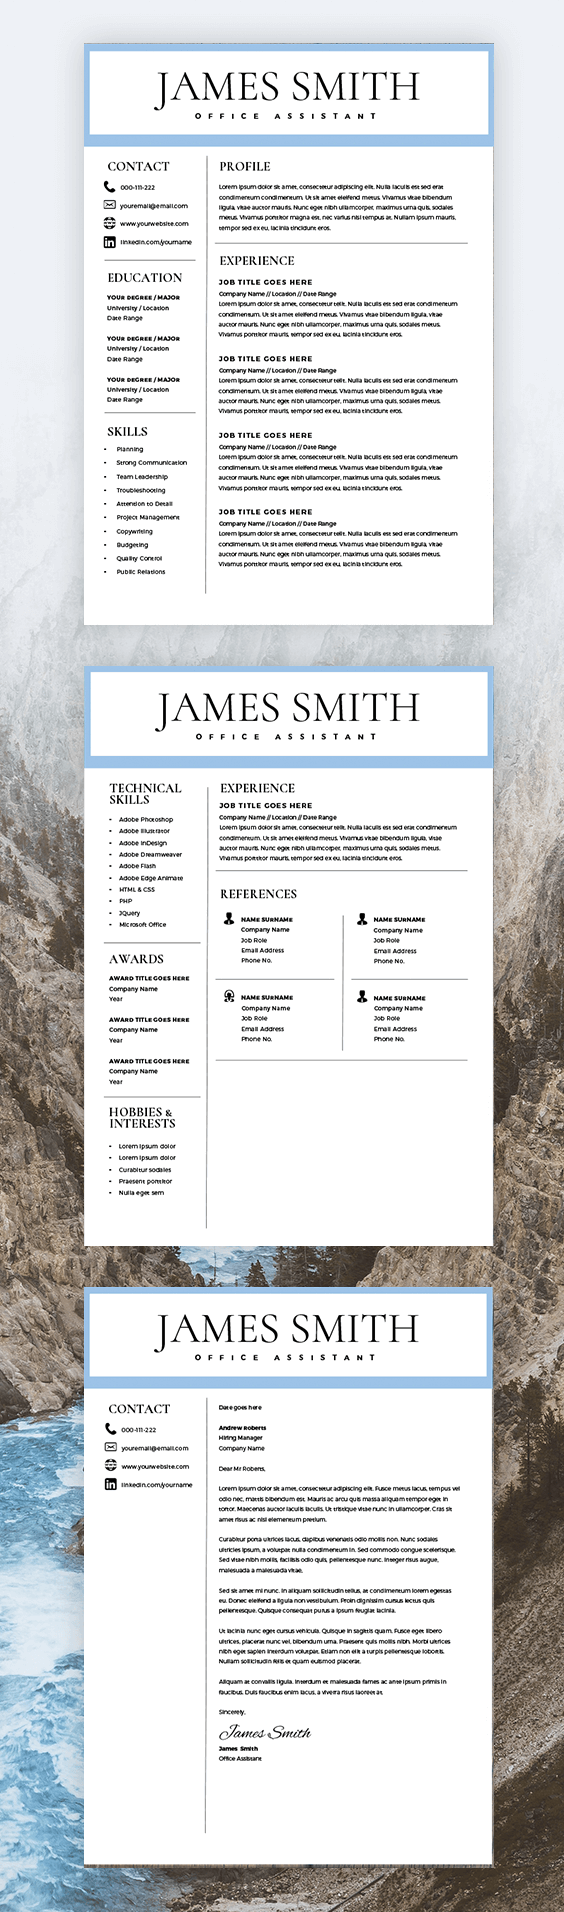 Resume Template for Men Writer Resume Template for Word & Pages 2 Pages Resume Cover Letter Curriculum Vitae Instant Download CV